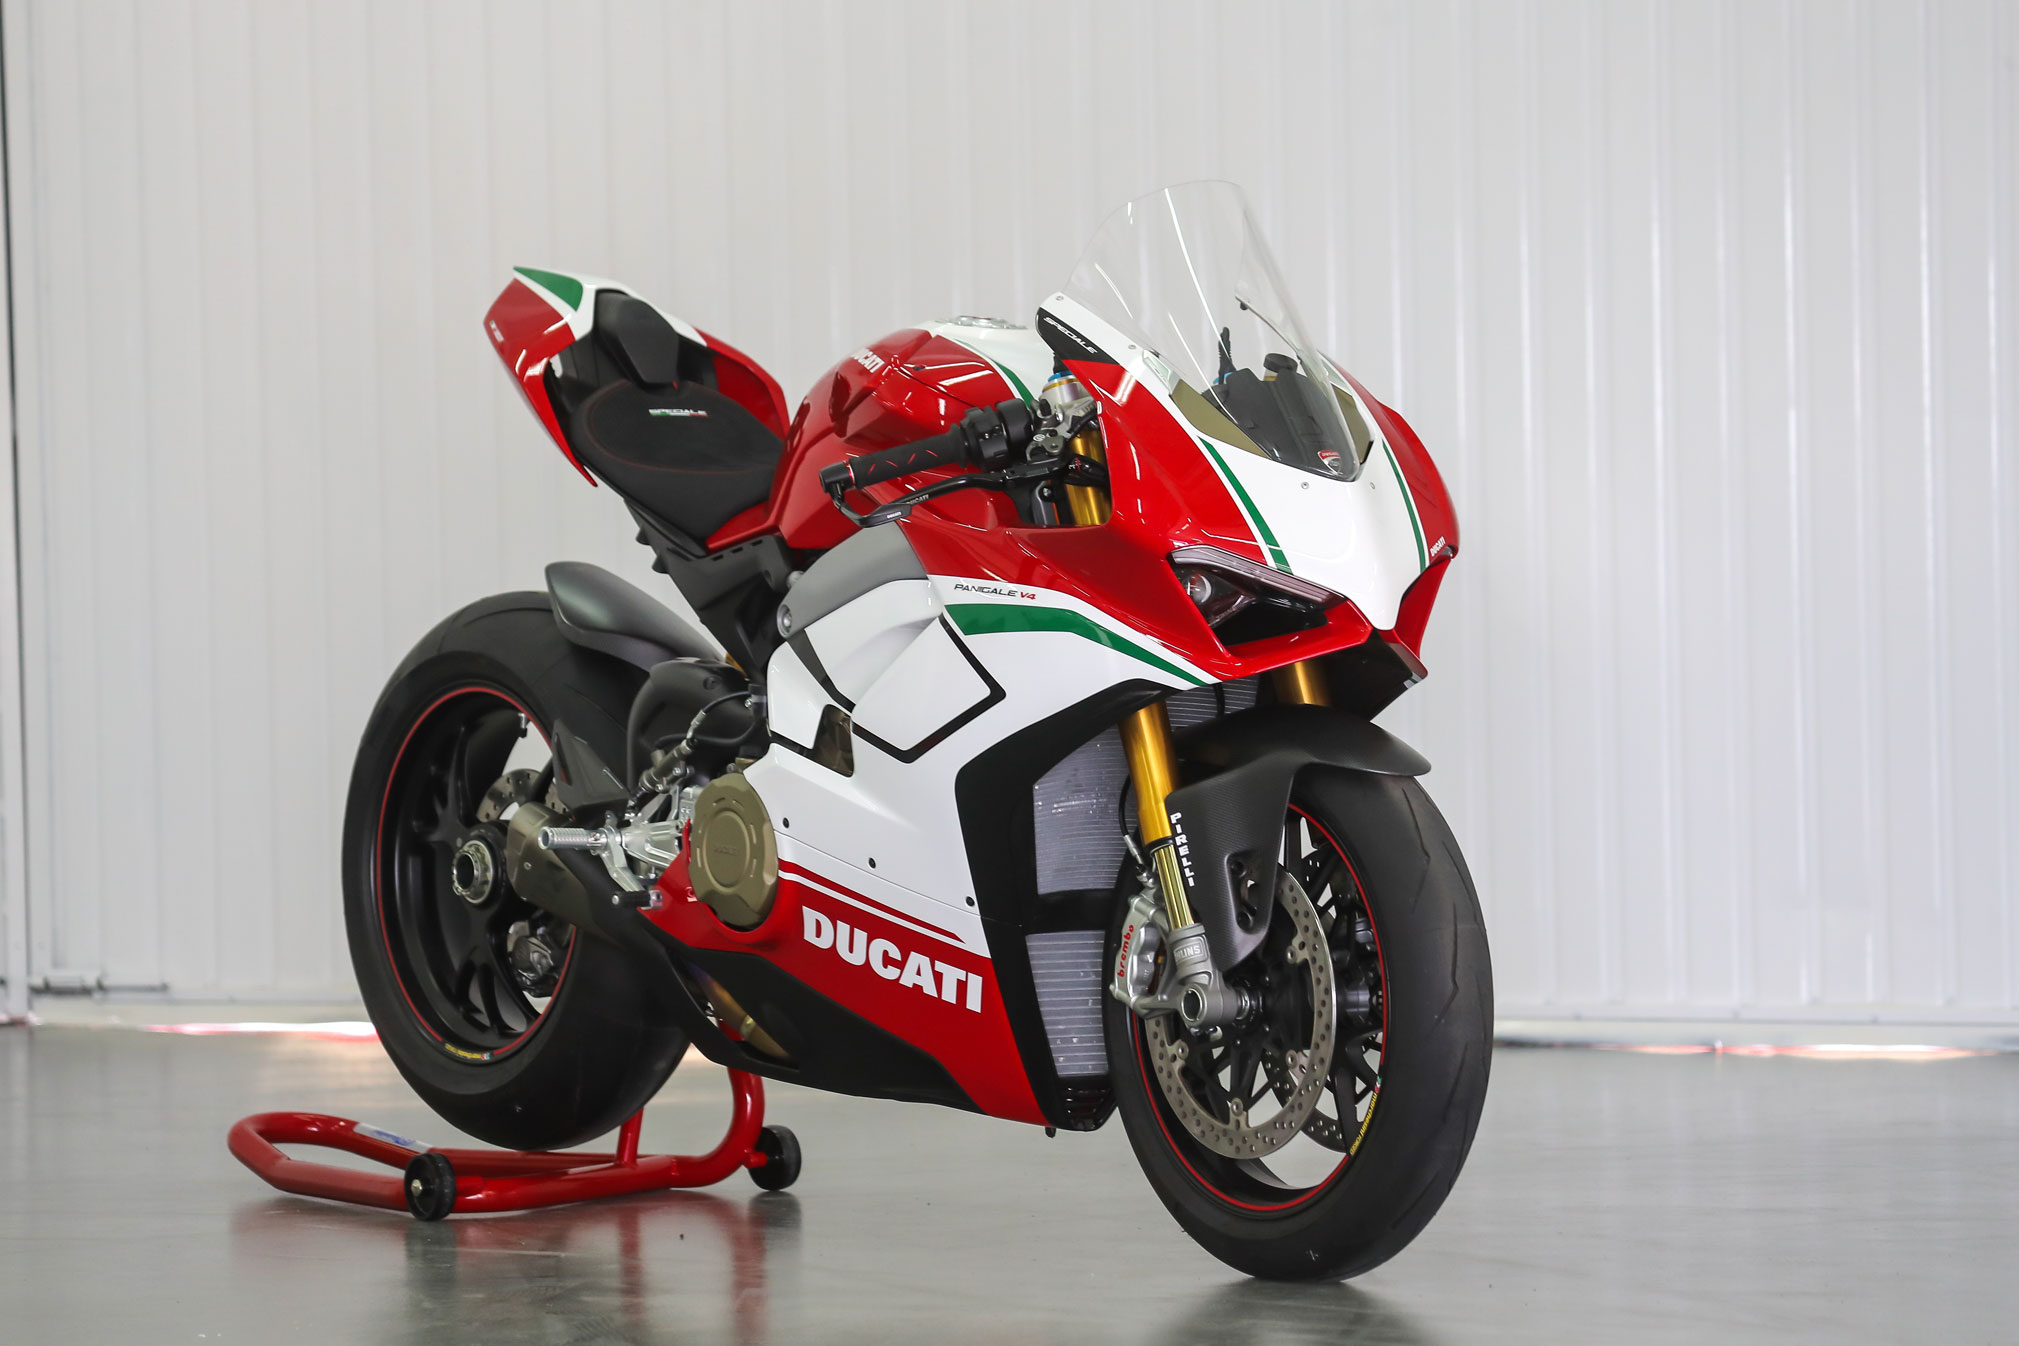 2019 ducati panigale v4 speciale guide total motorcycle. Black Bedroom Furniture Sets. Home Design Ideas